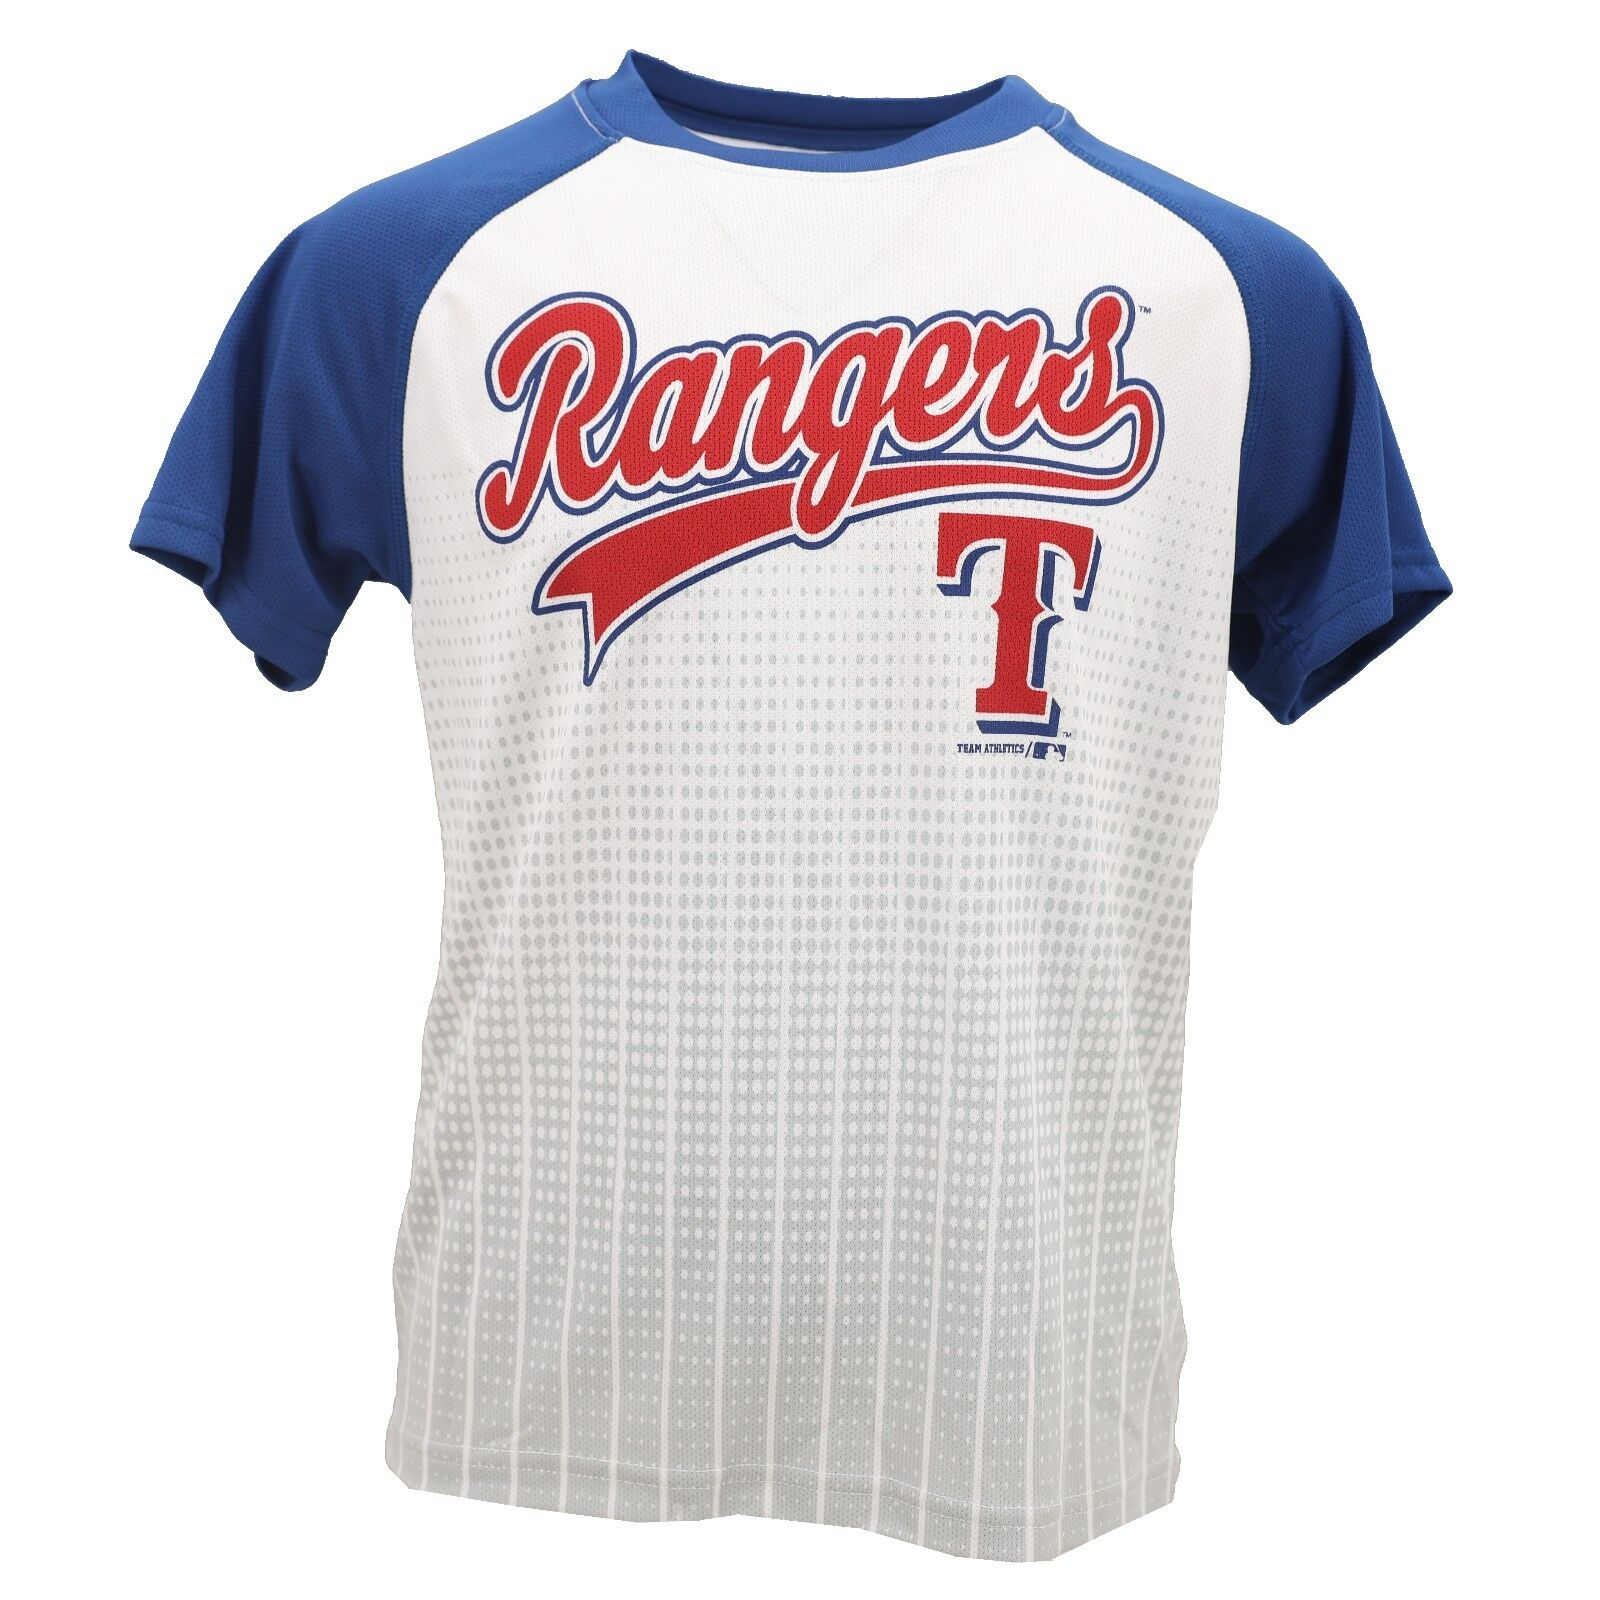 Details about Texas Rangers Official MLB Genuine Kids Youth Size Athletic  Shirt New with Tags 74992a818